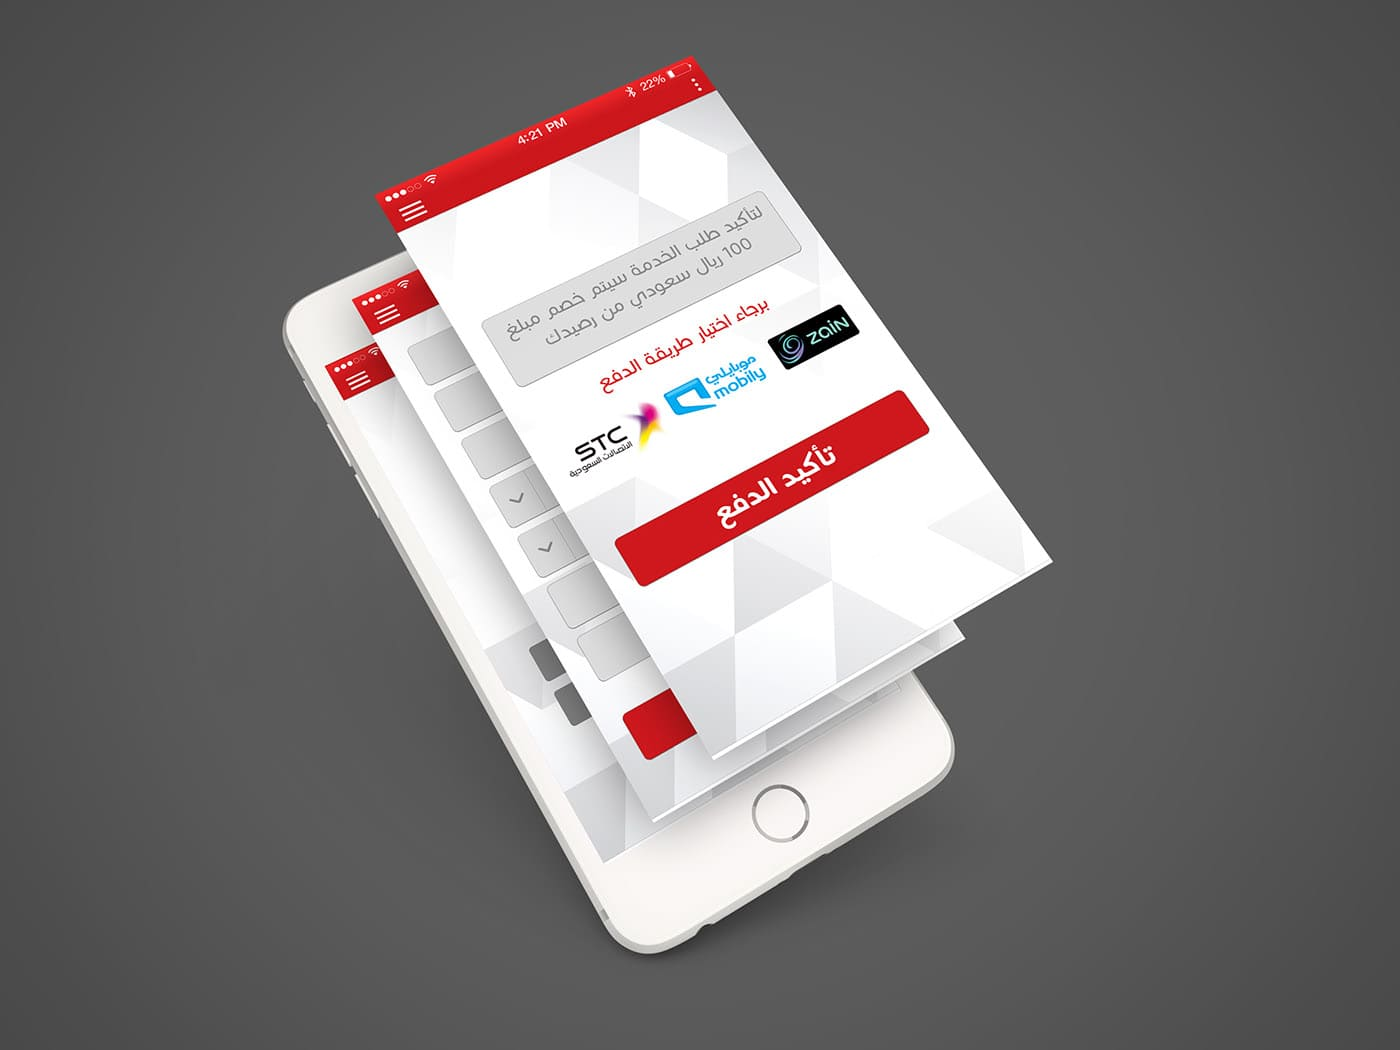 Mobile applications are one of the most powerful marketing methods that systems follow, no matter how big or how small